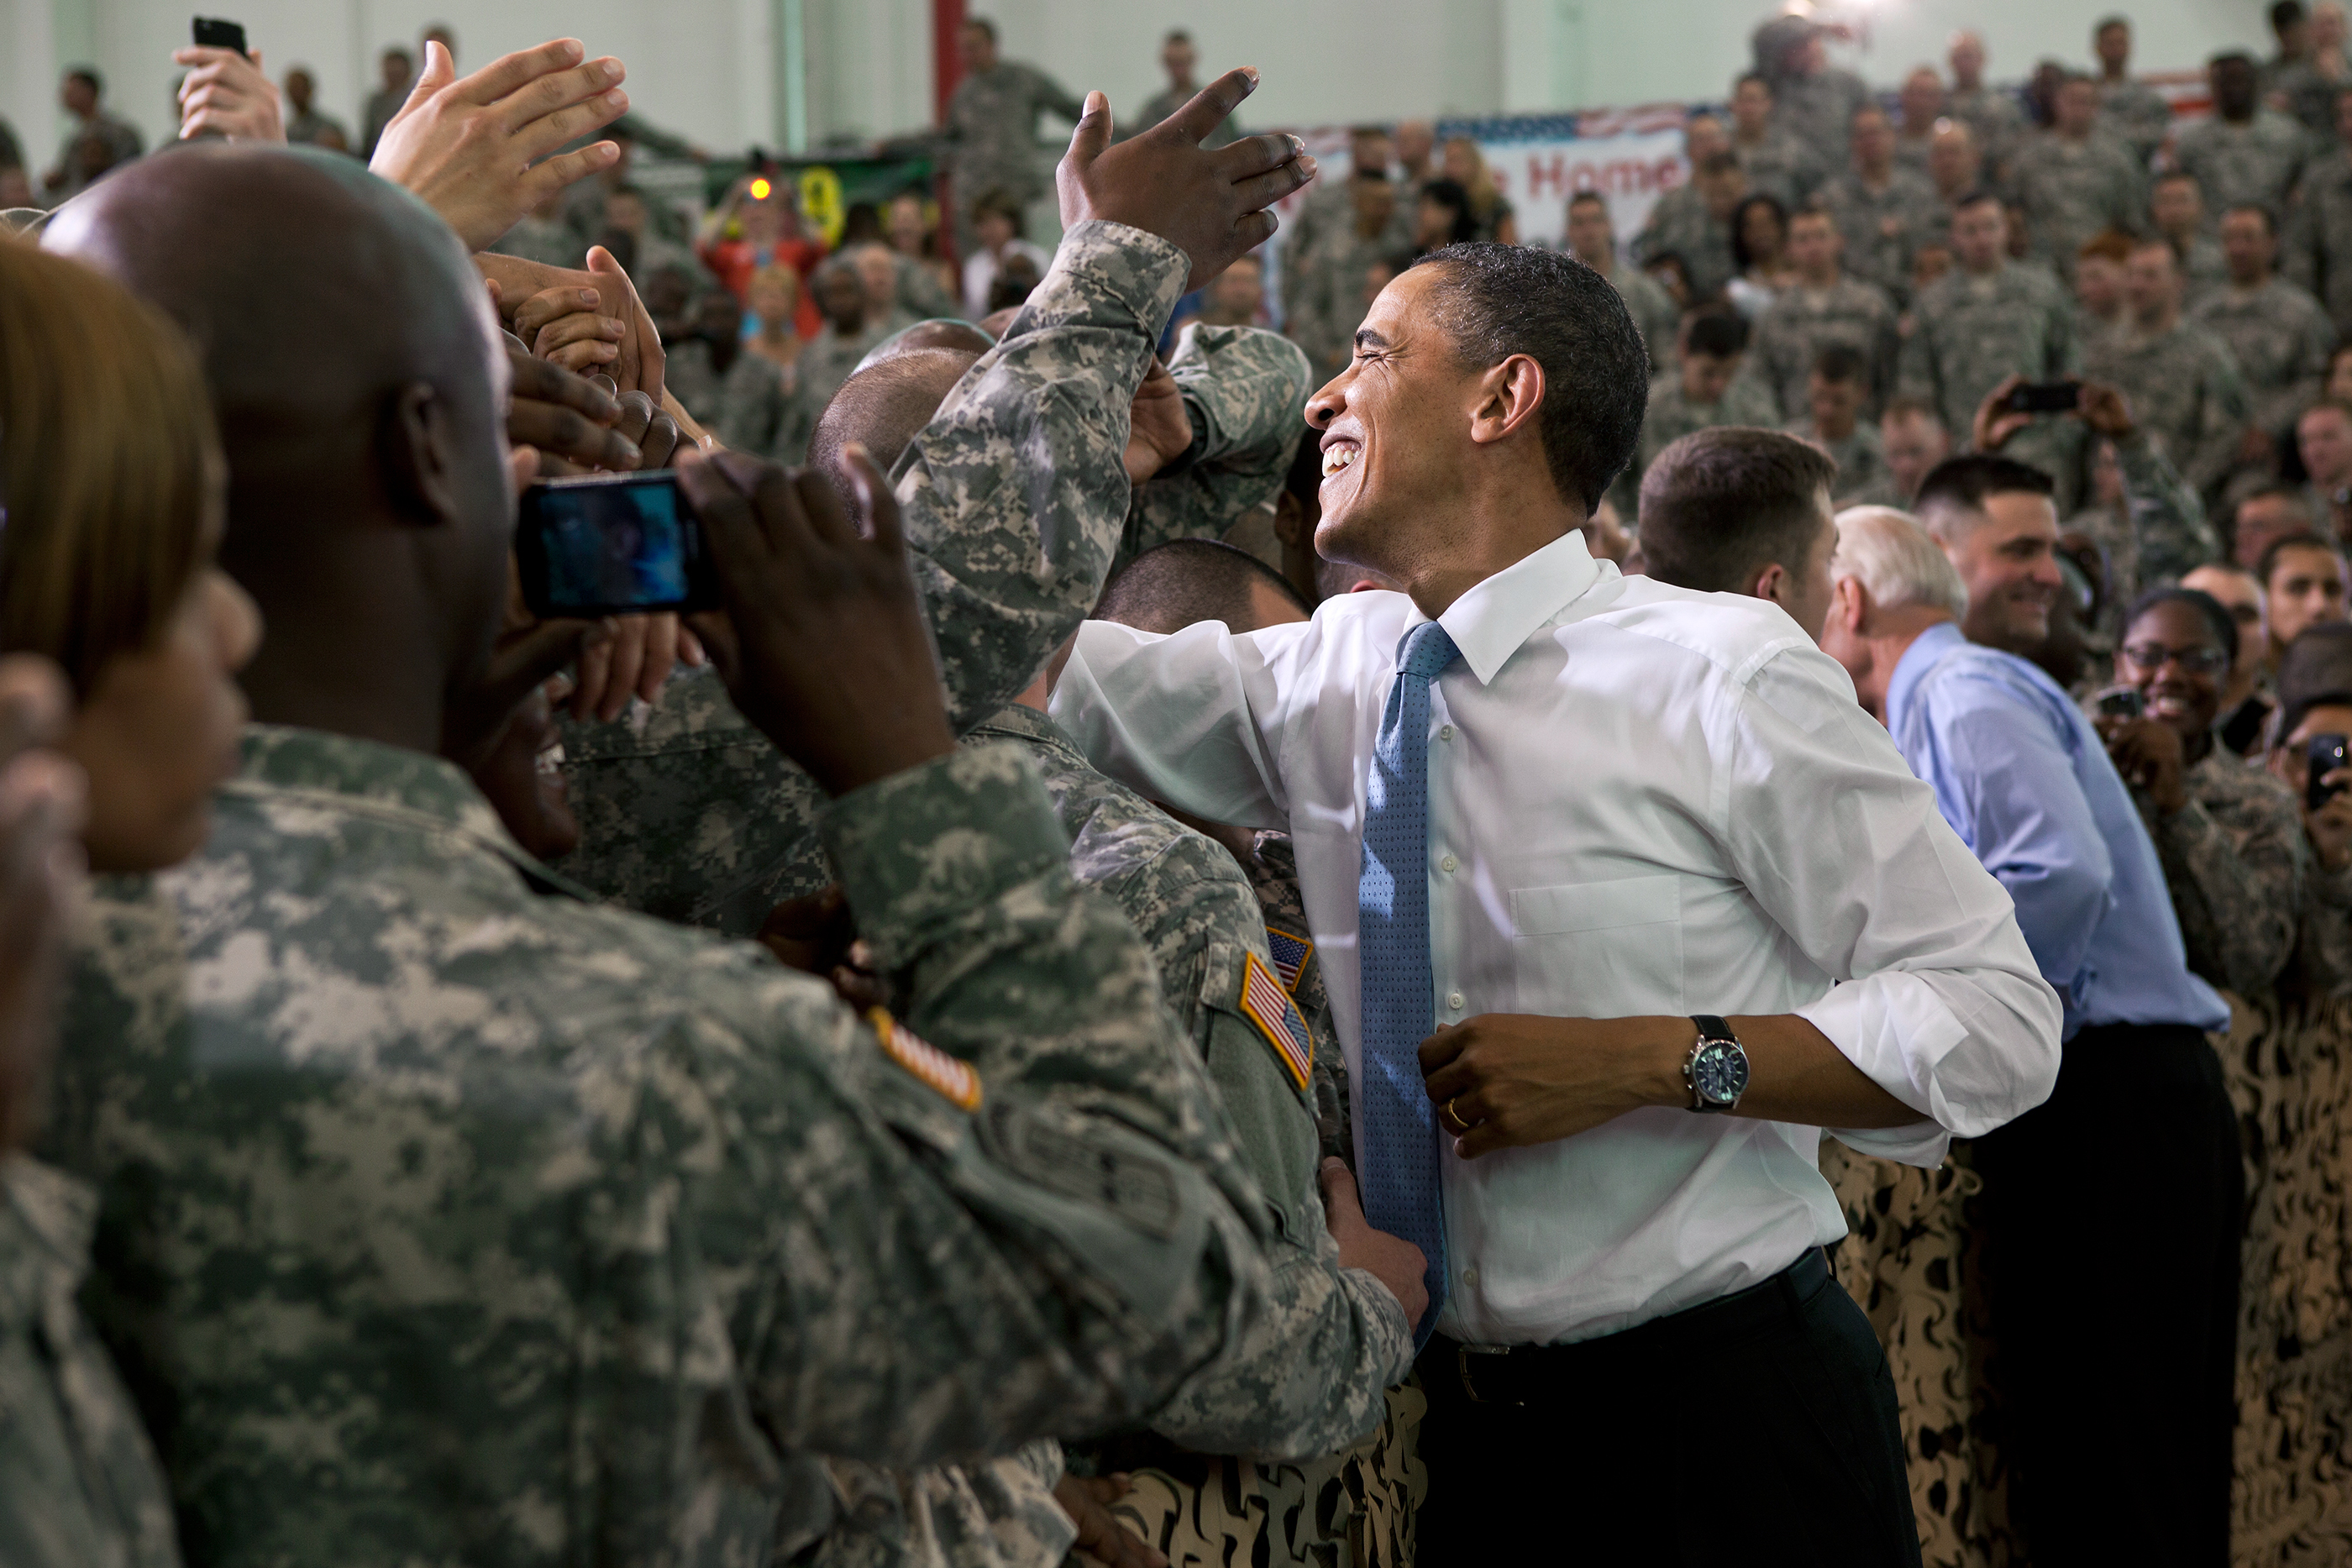 Kentucky, May 6, 2011. Greeting  troops with the Vice President at Fort Campbell. (Official White House Photo by Pete Souza)